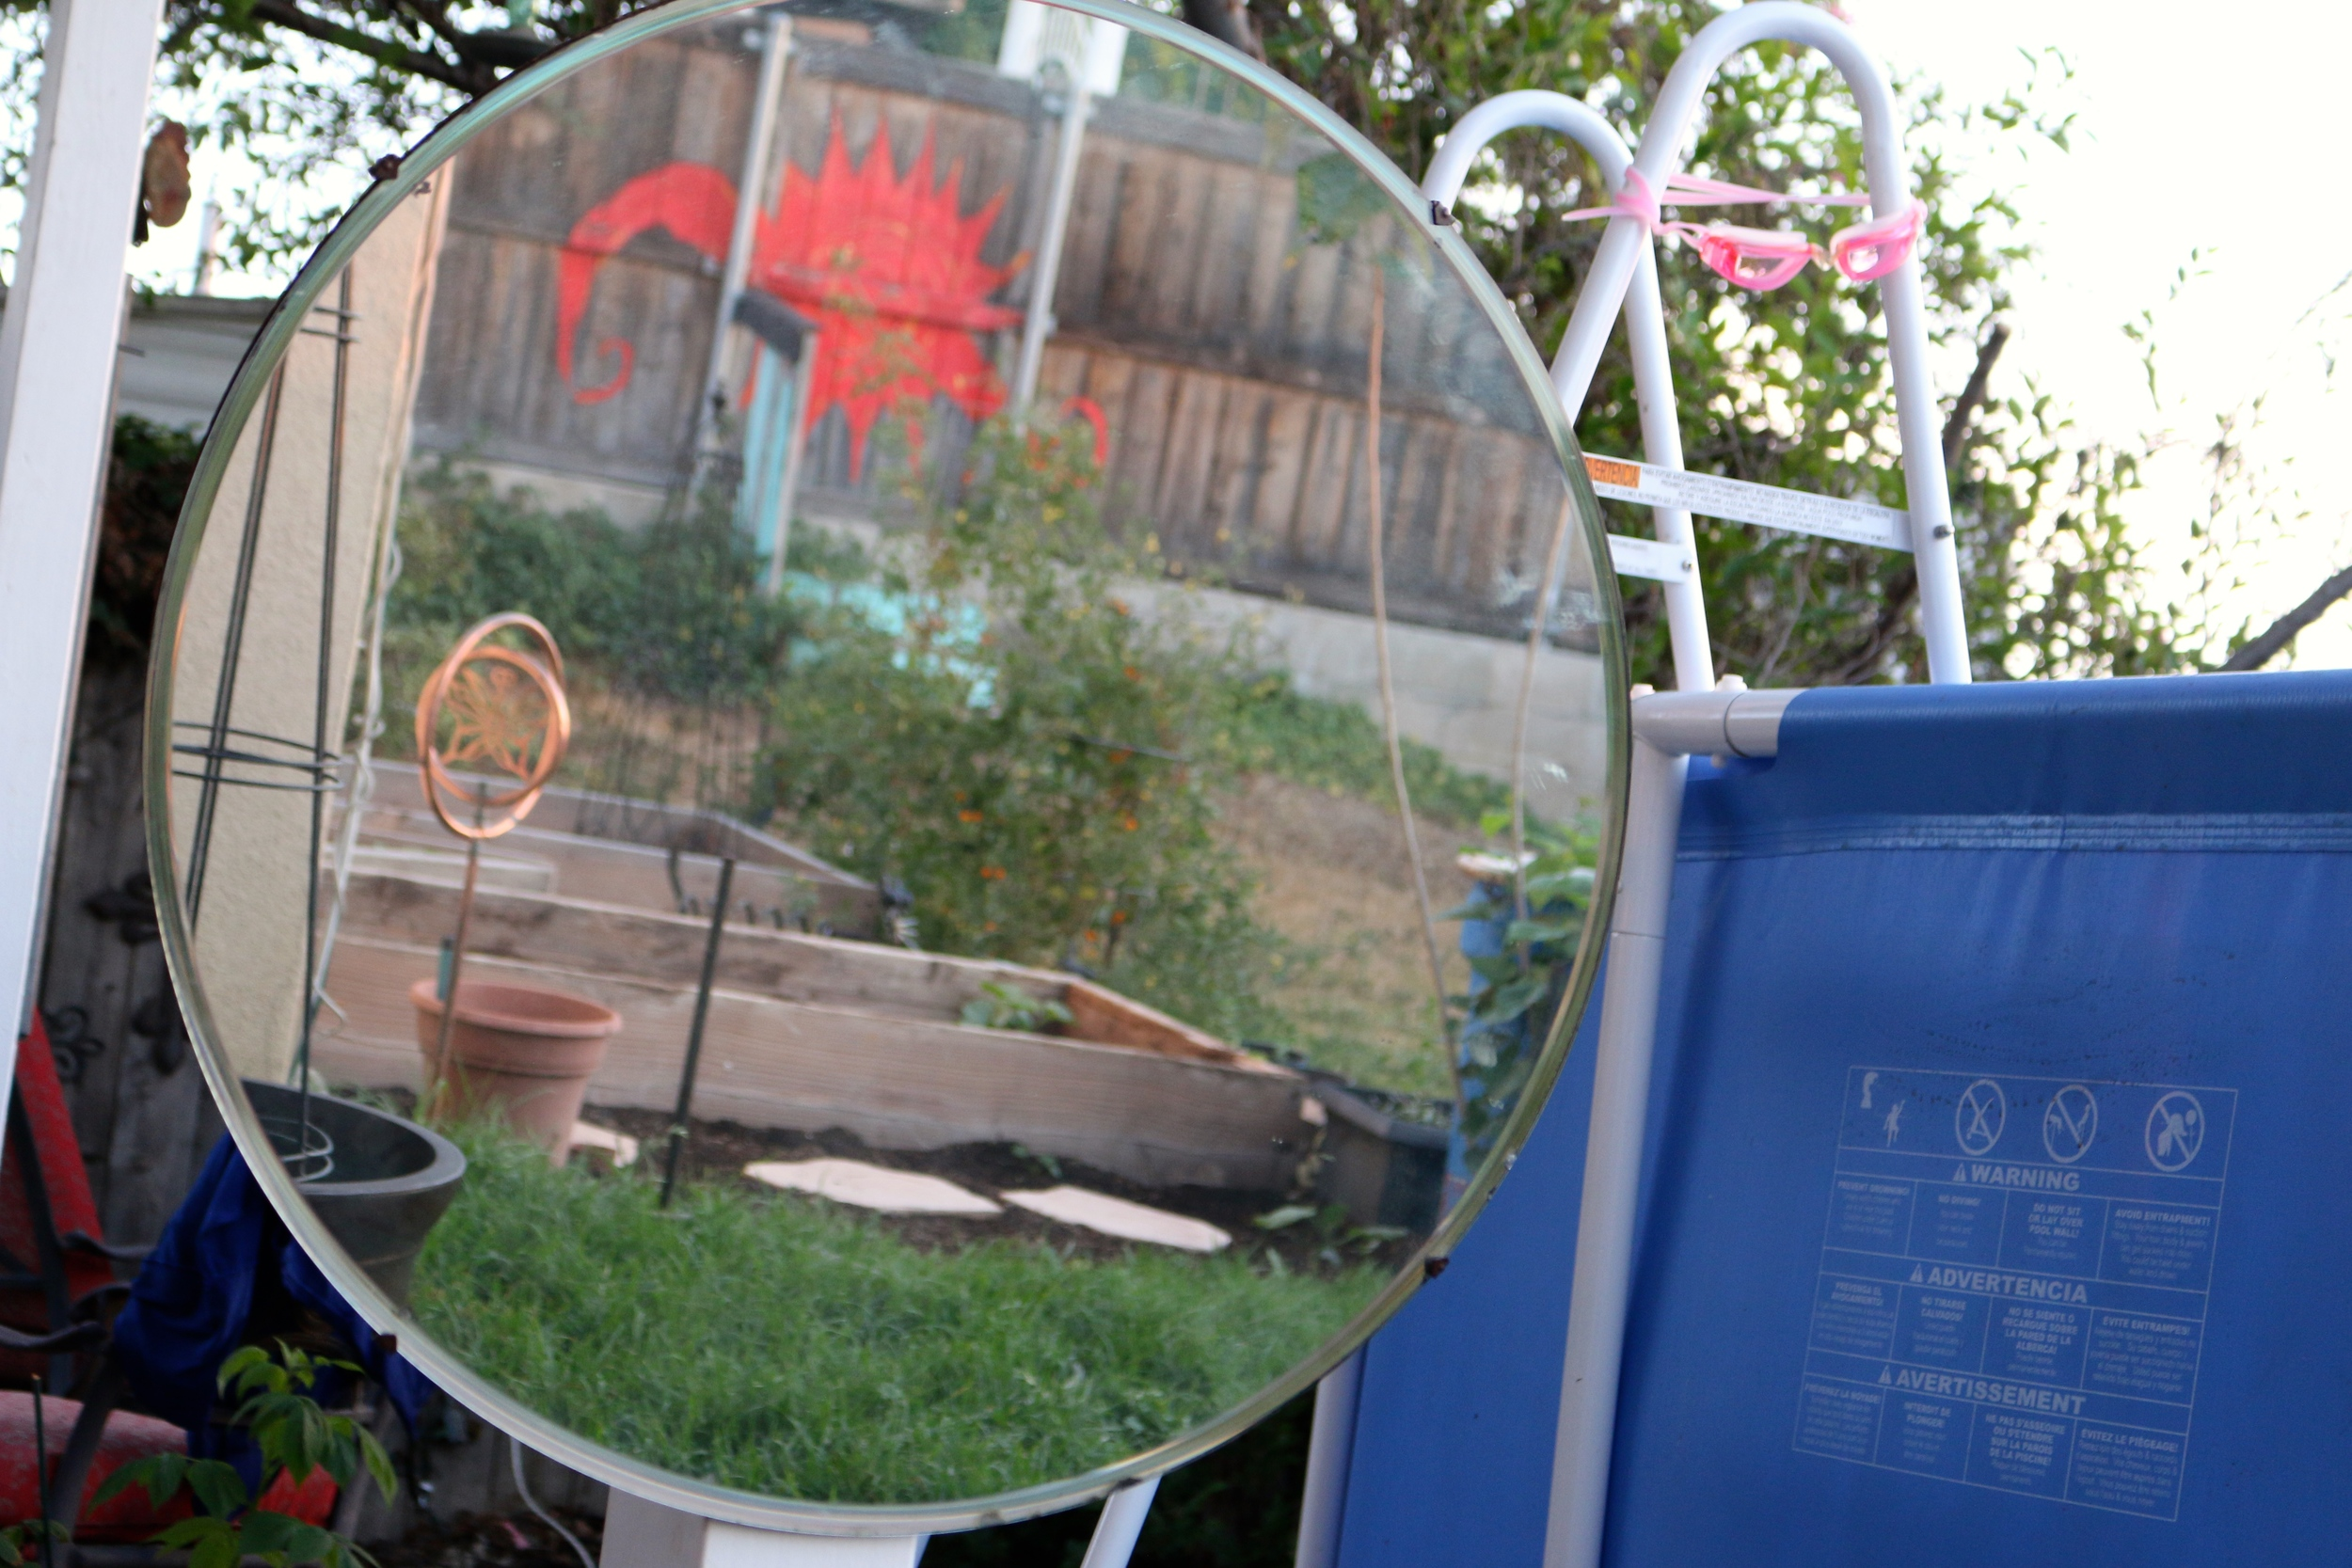 I bought a new/old mirror to hang in the back yard. It was at a yard sale on my very own block.